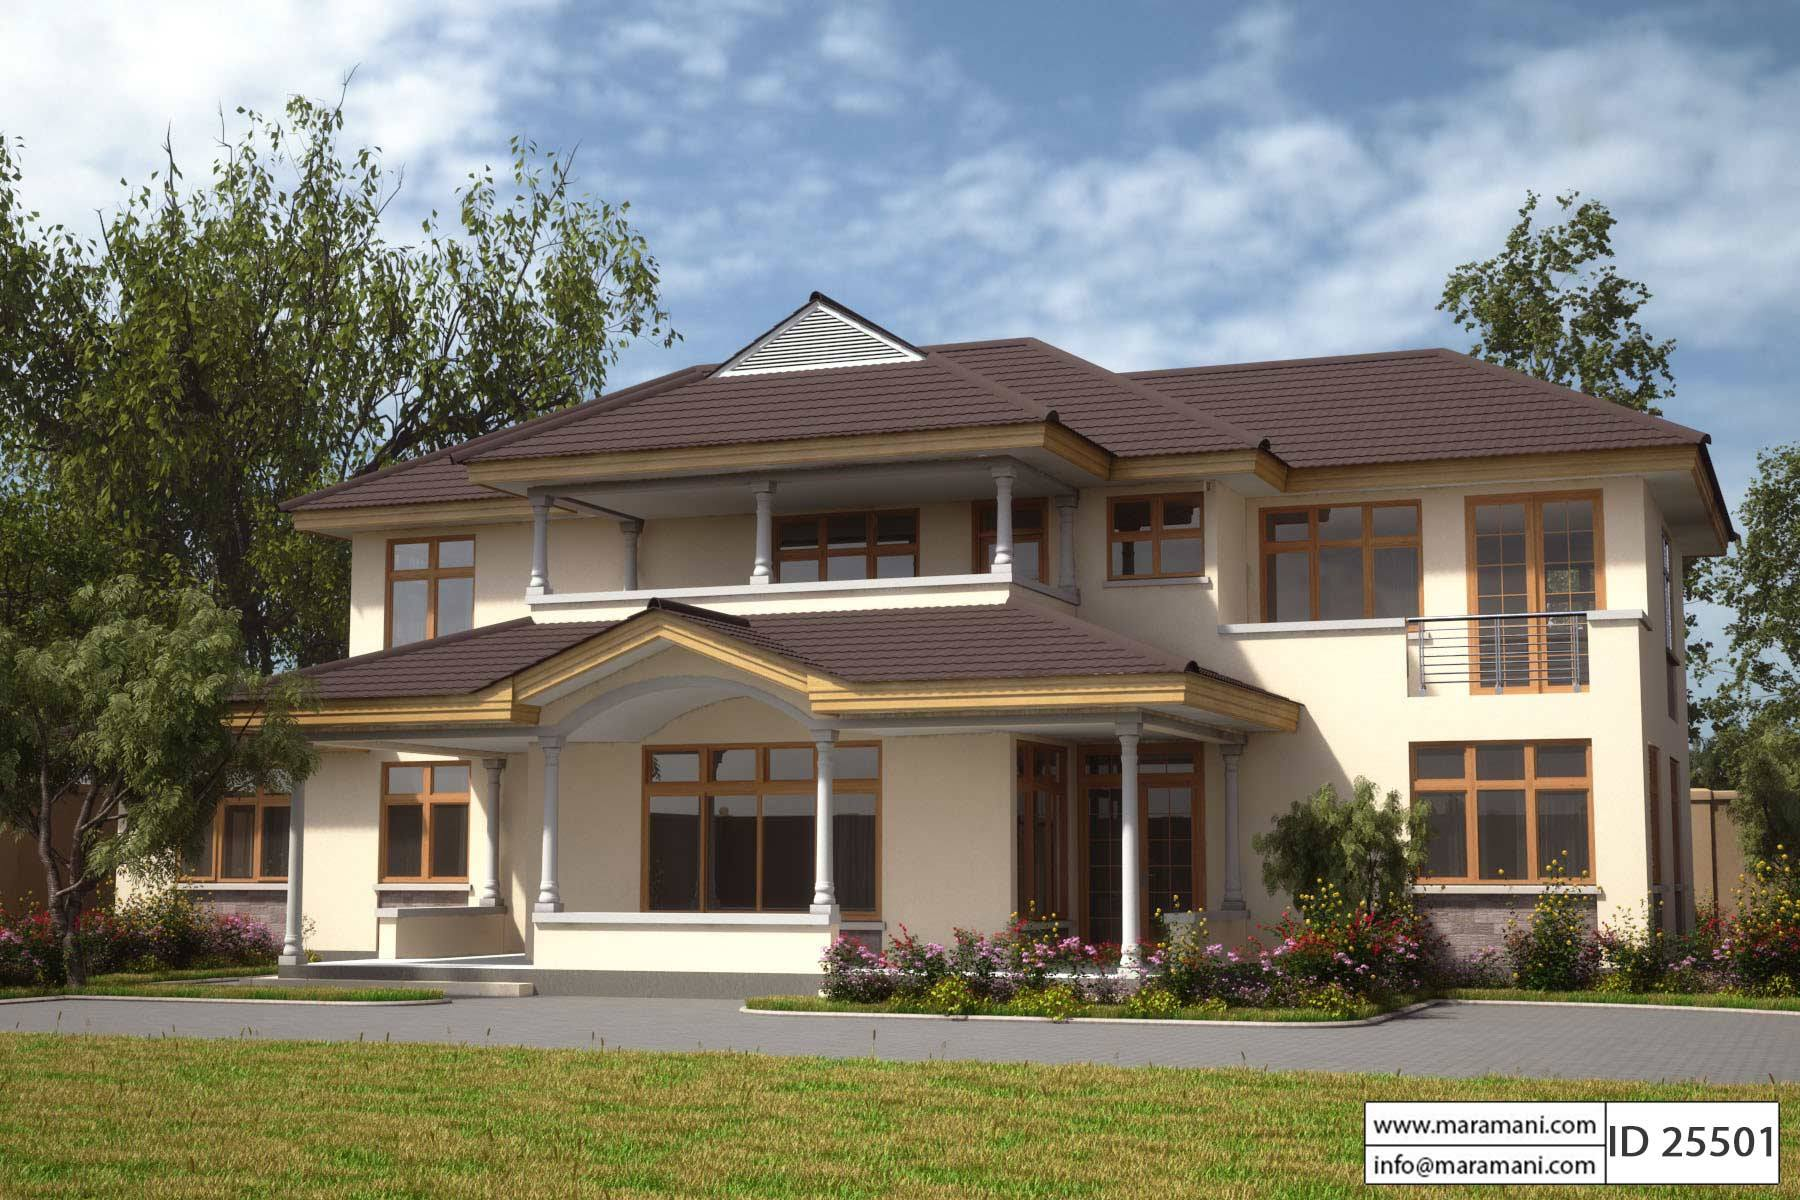 5 Bedroom House Plan With Bonus Room Id 25501 Plans By